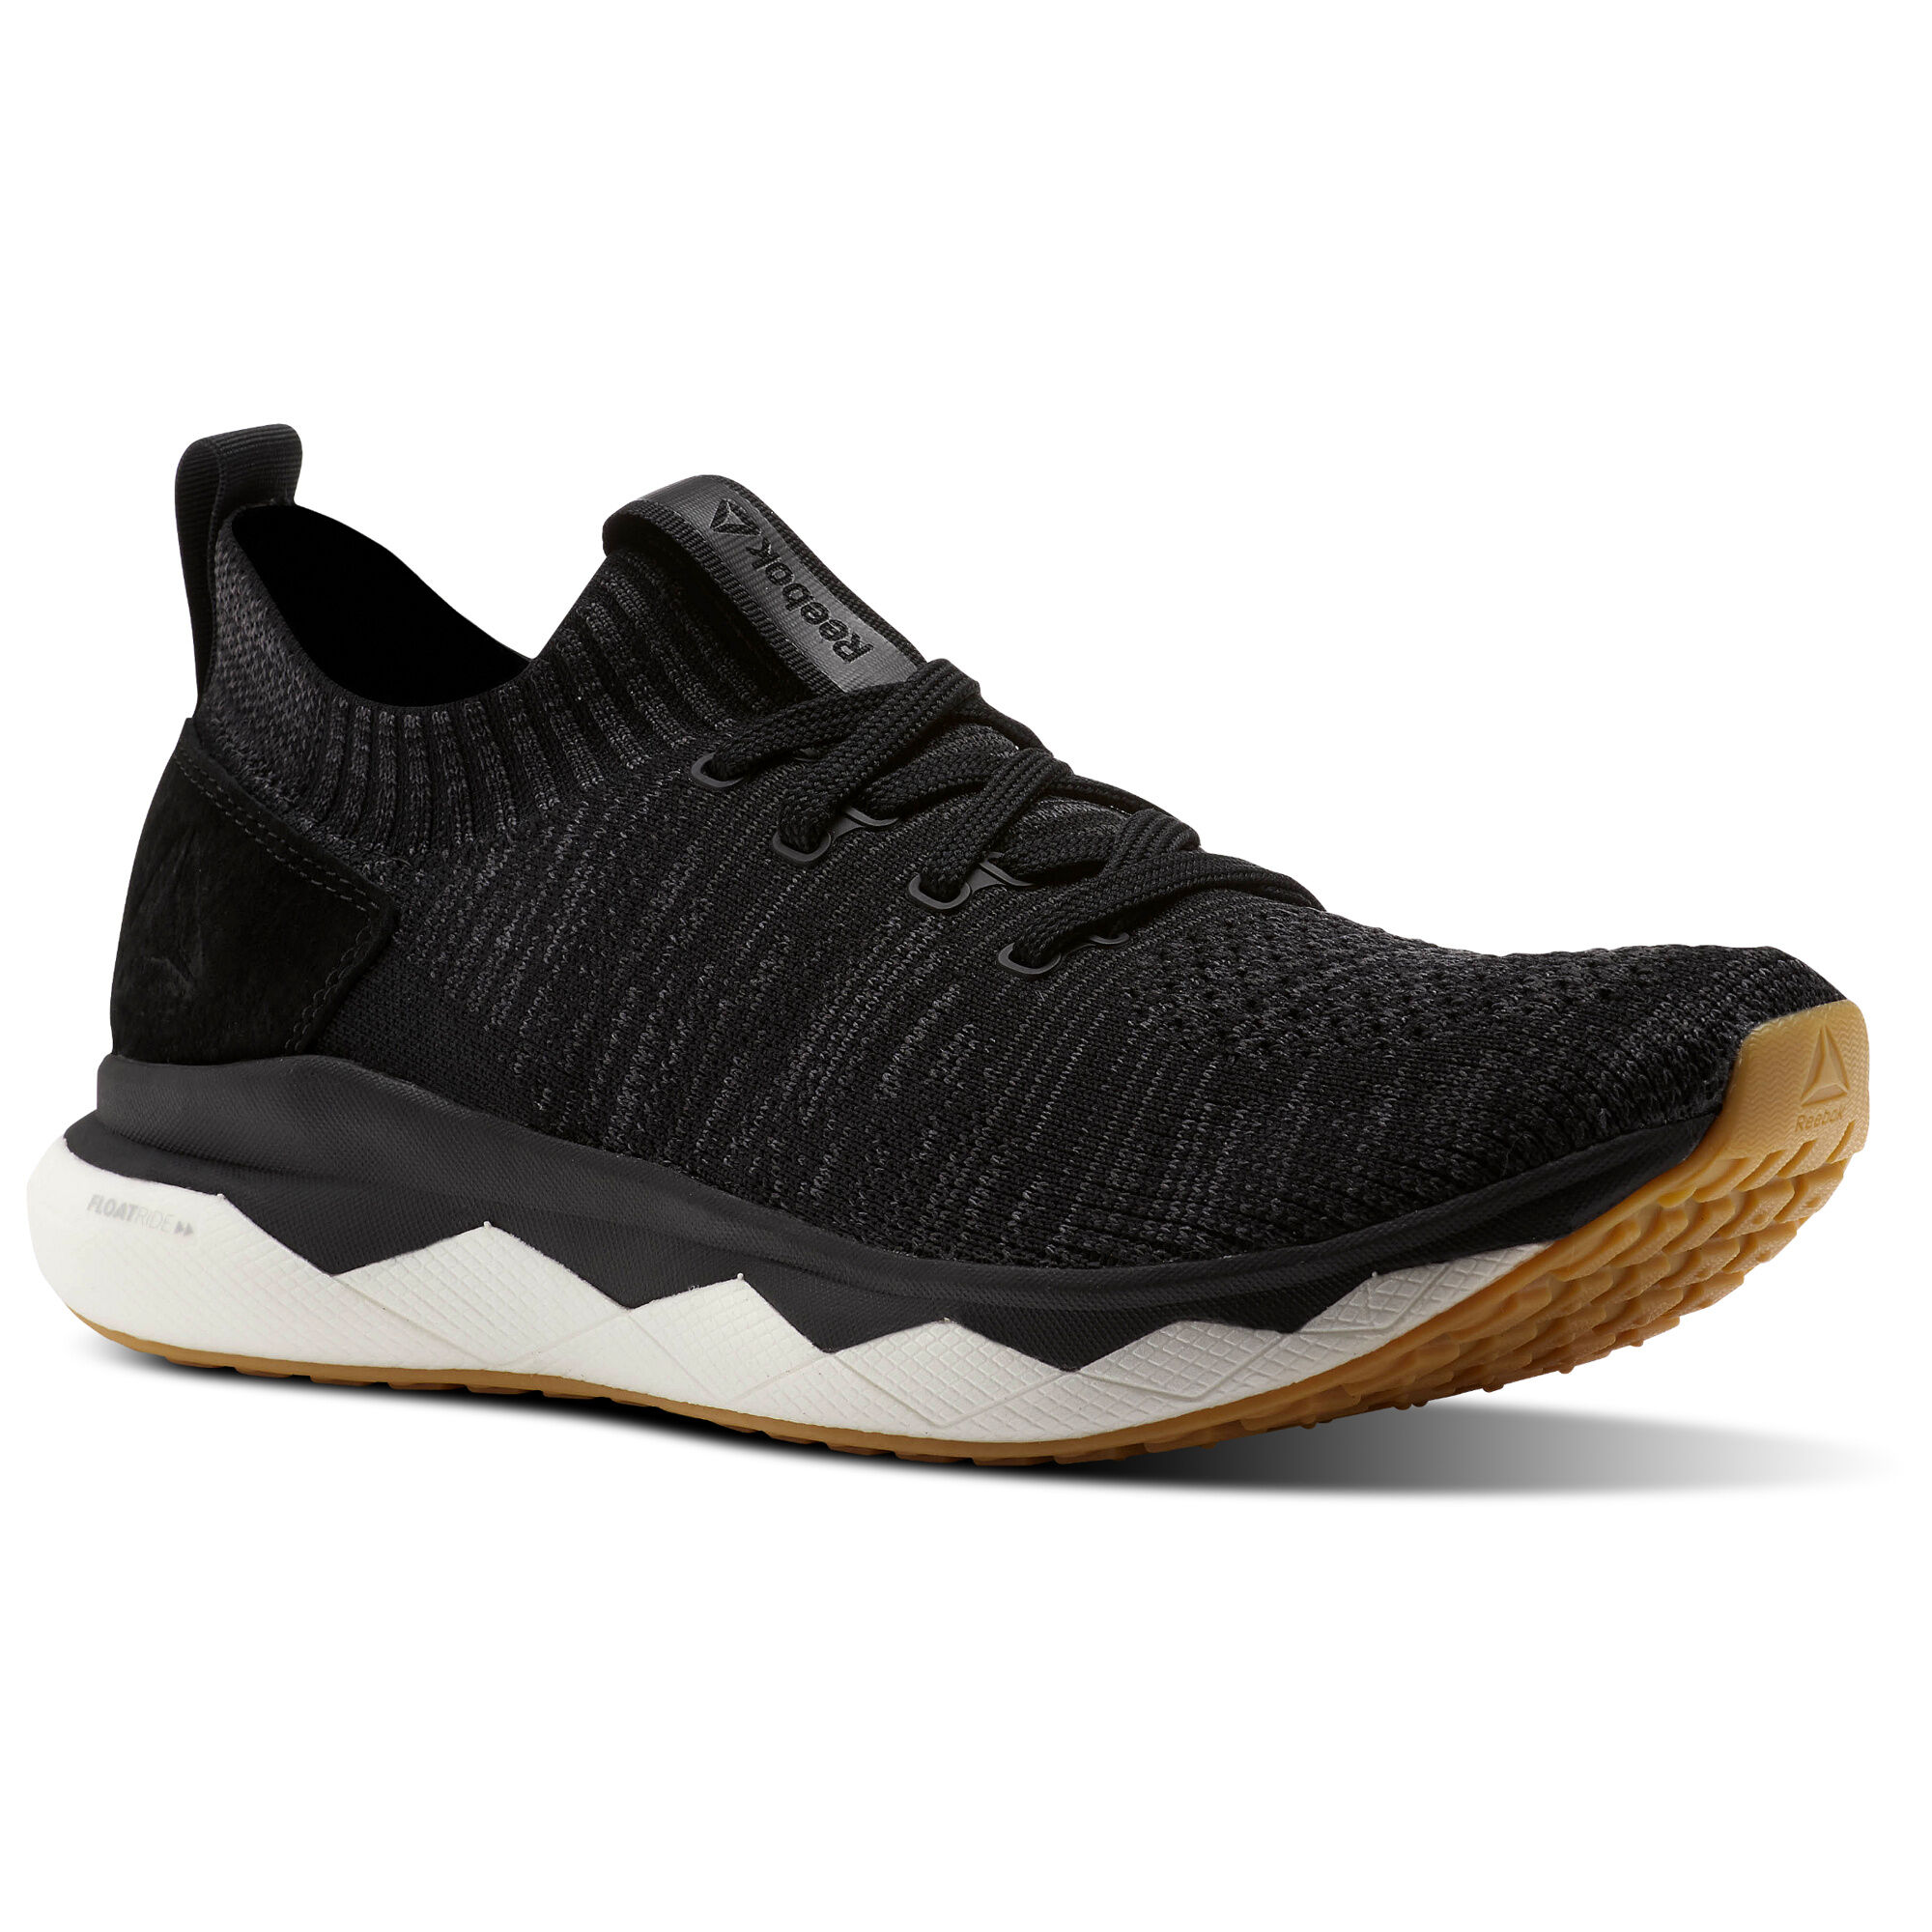 Reebok Floatride RS Ultk Urban / Ash Grey/ Coal/ Gum rDauUF